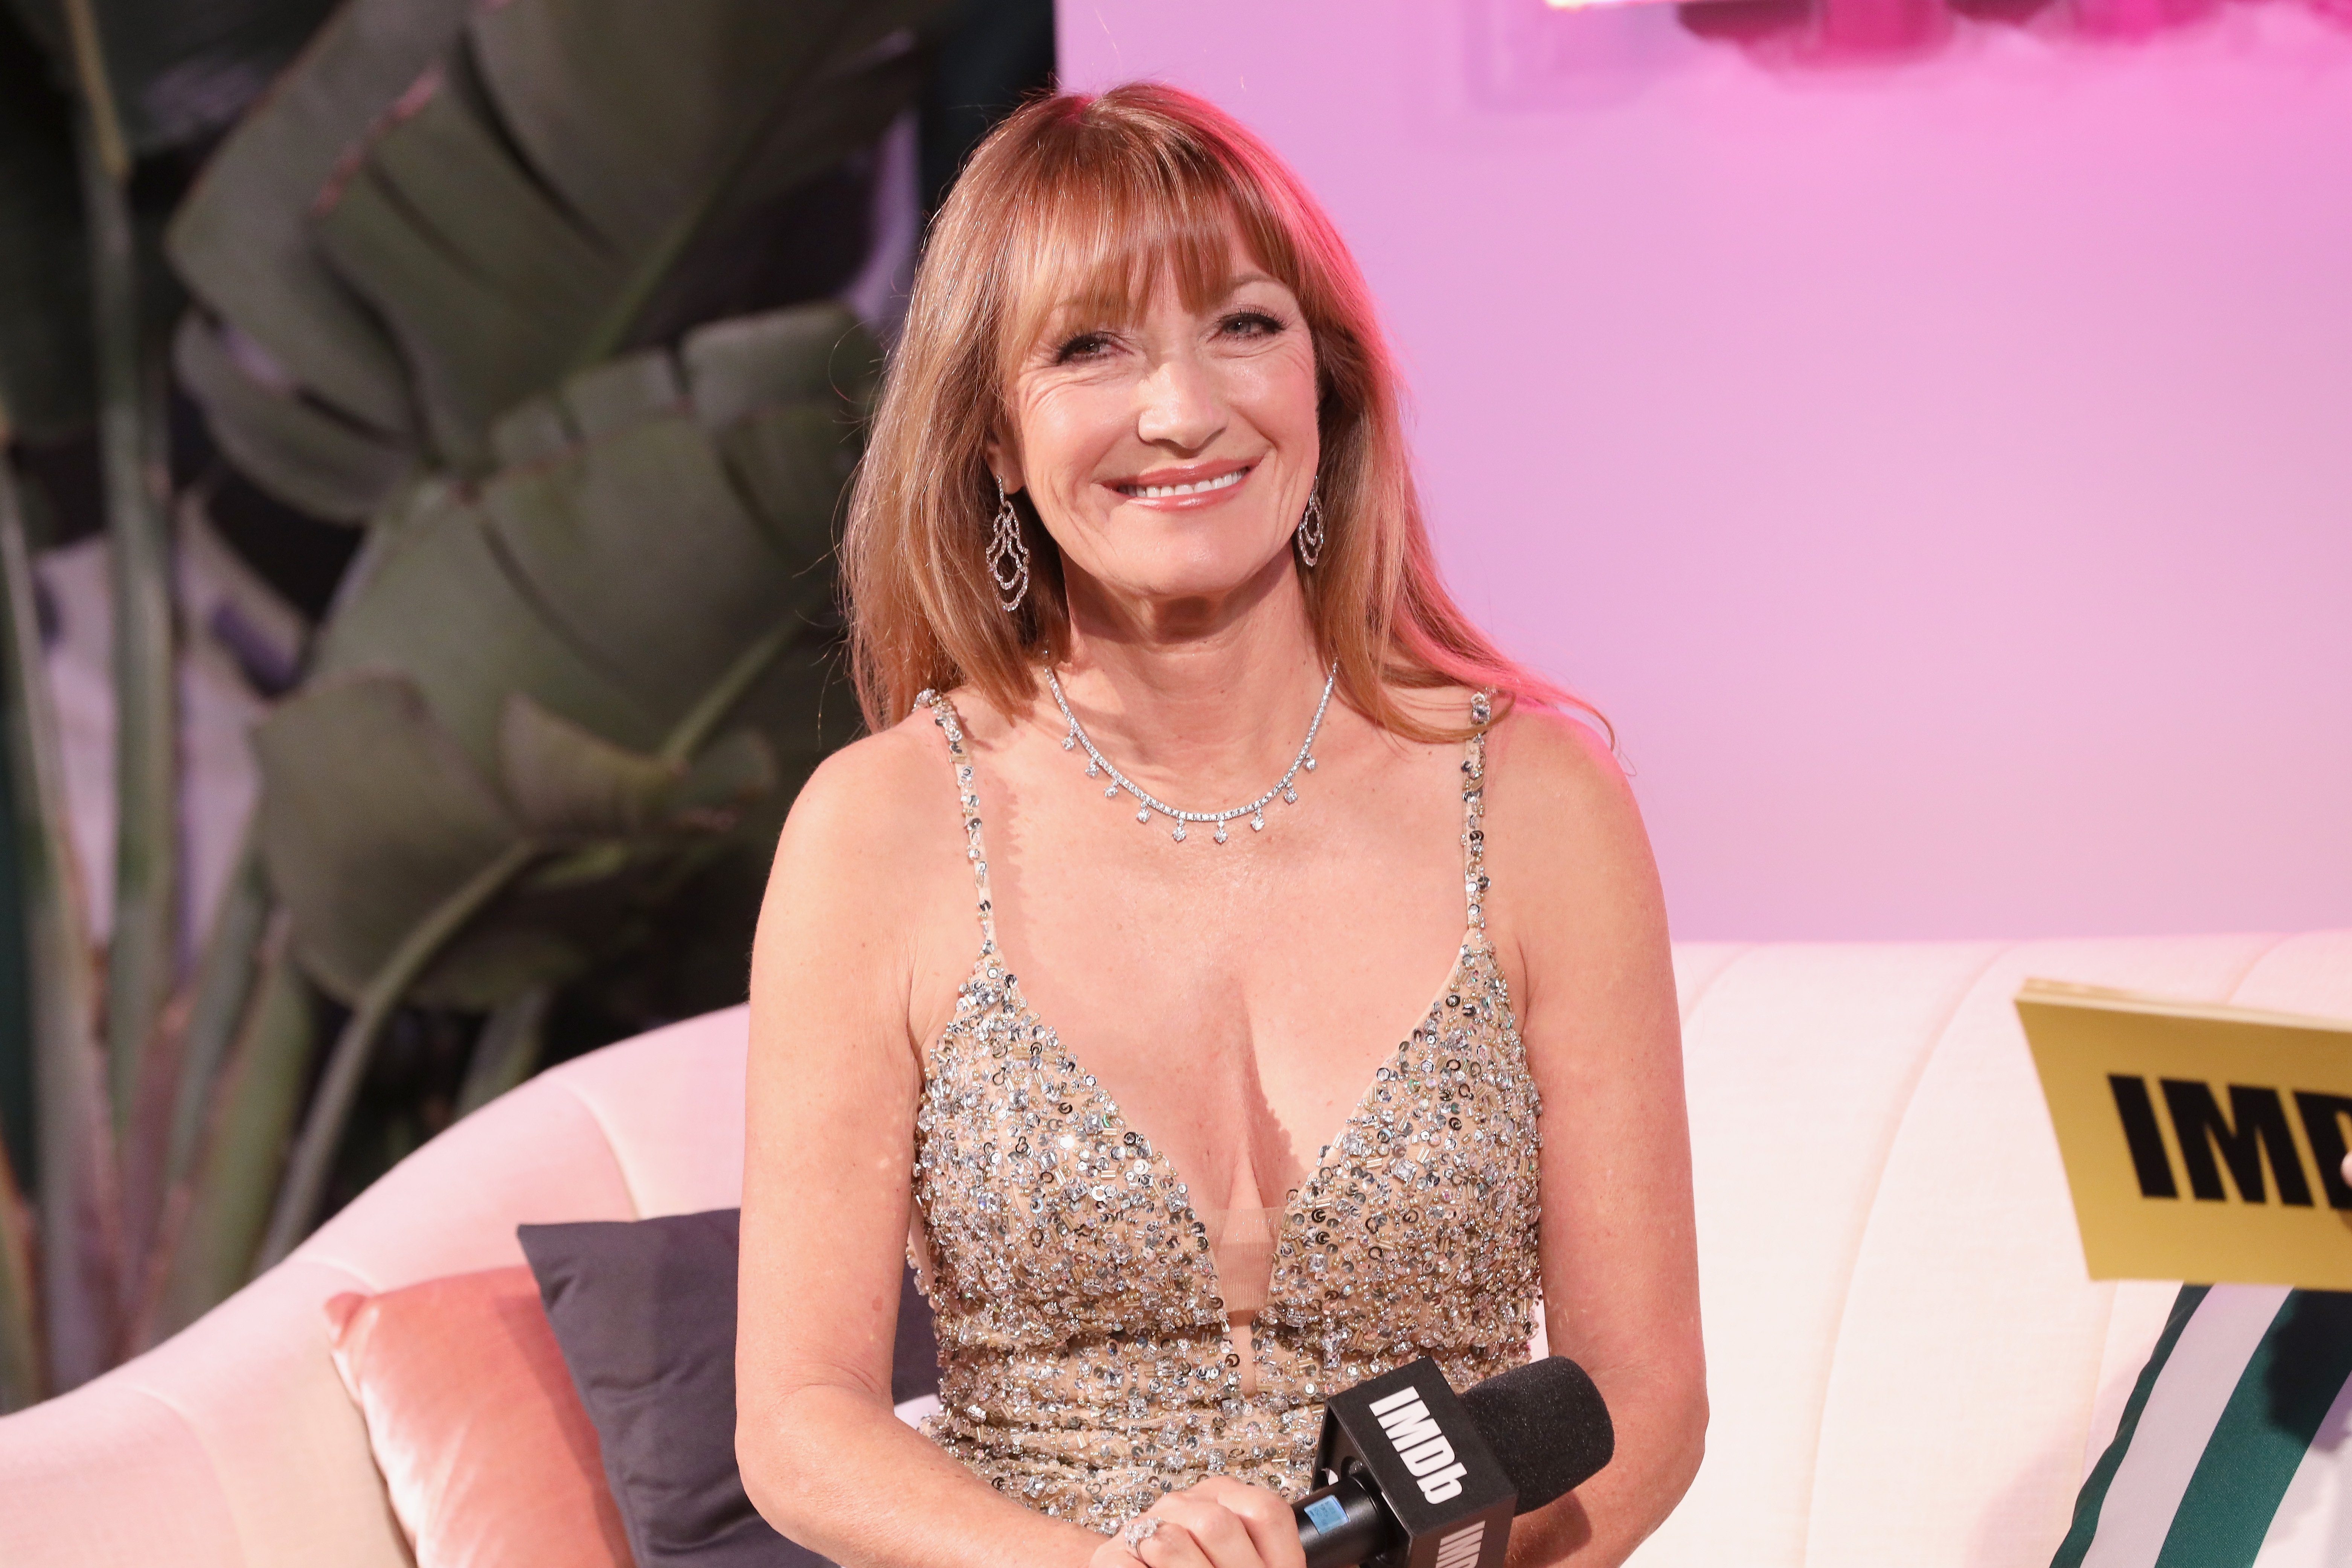 Jane Seymour at The Elton John Aids Foundation Academy Awards in Los Angeles which took place on February 24, 2019.   Photo: Getty Images.